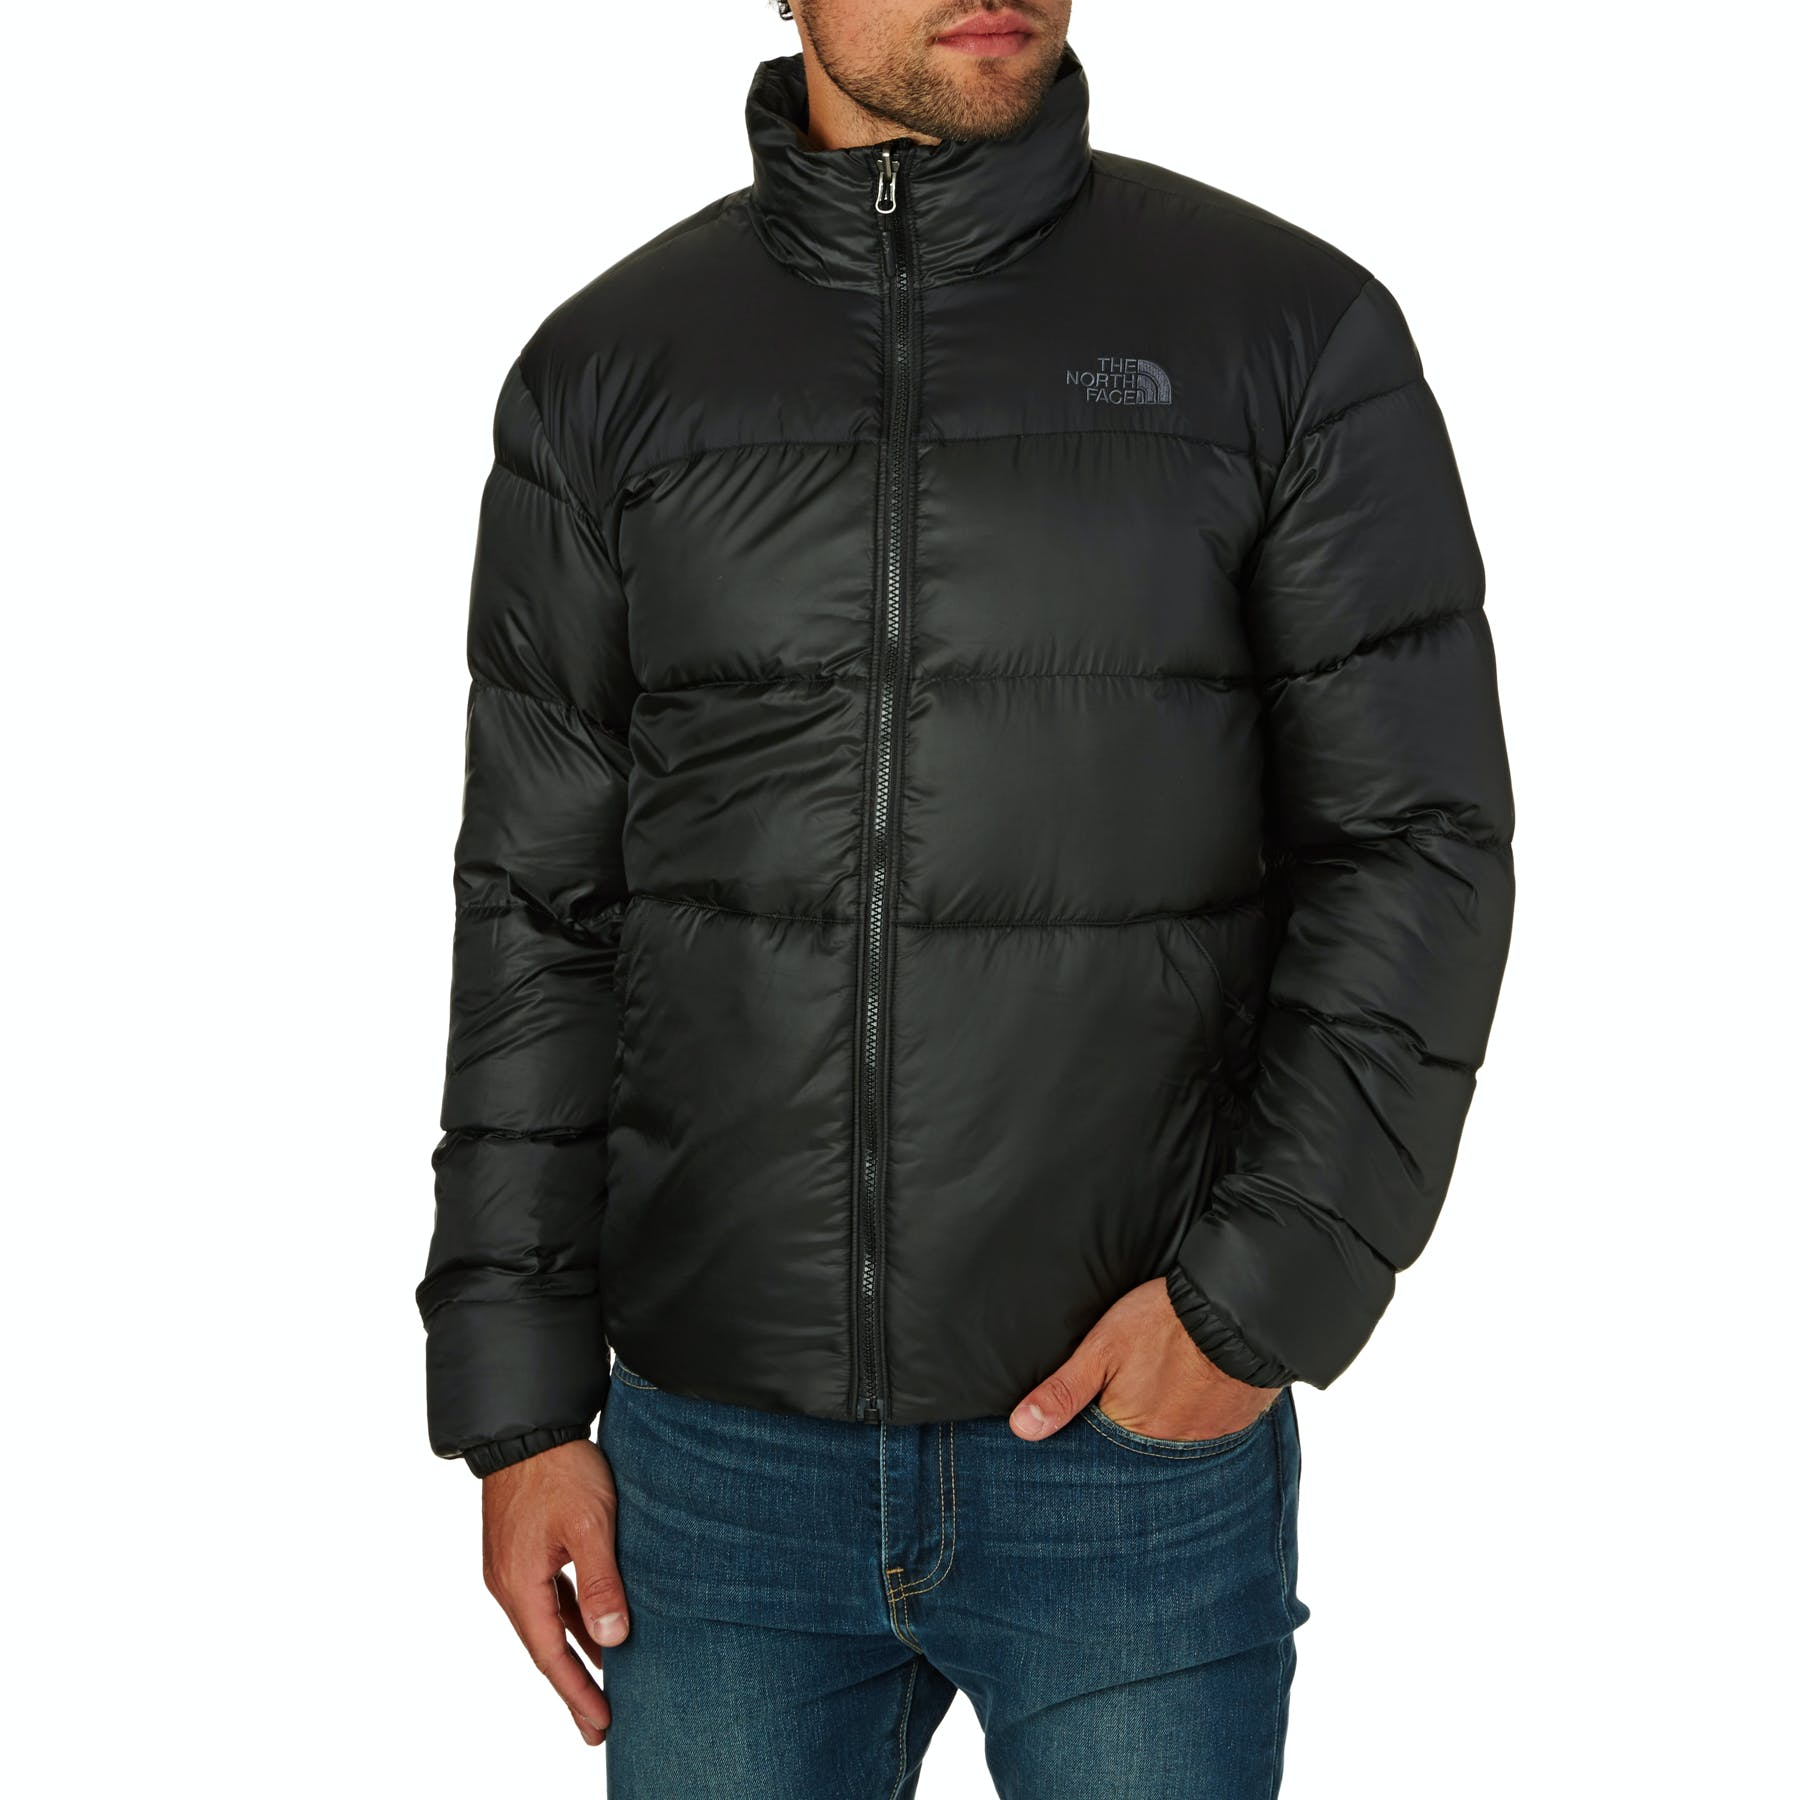 4441328c8 North Face Nuptse III Down Jacket - Free Delivery options on All Orders  from Surfdome UK